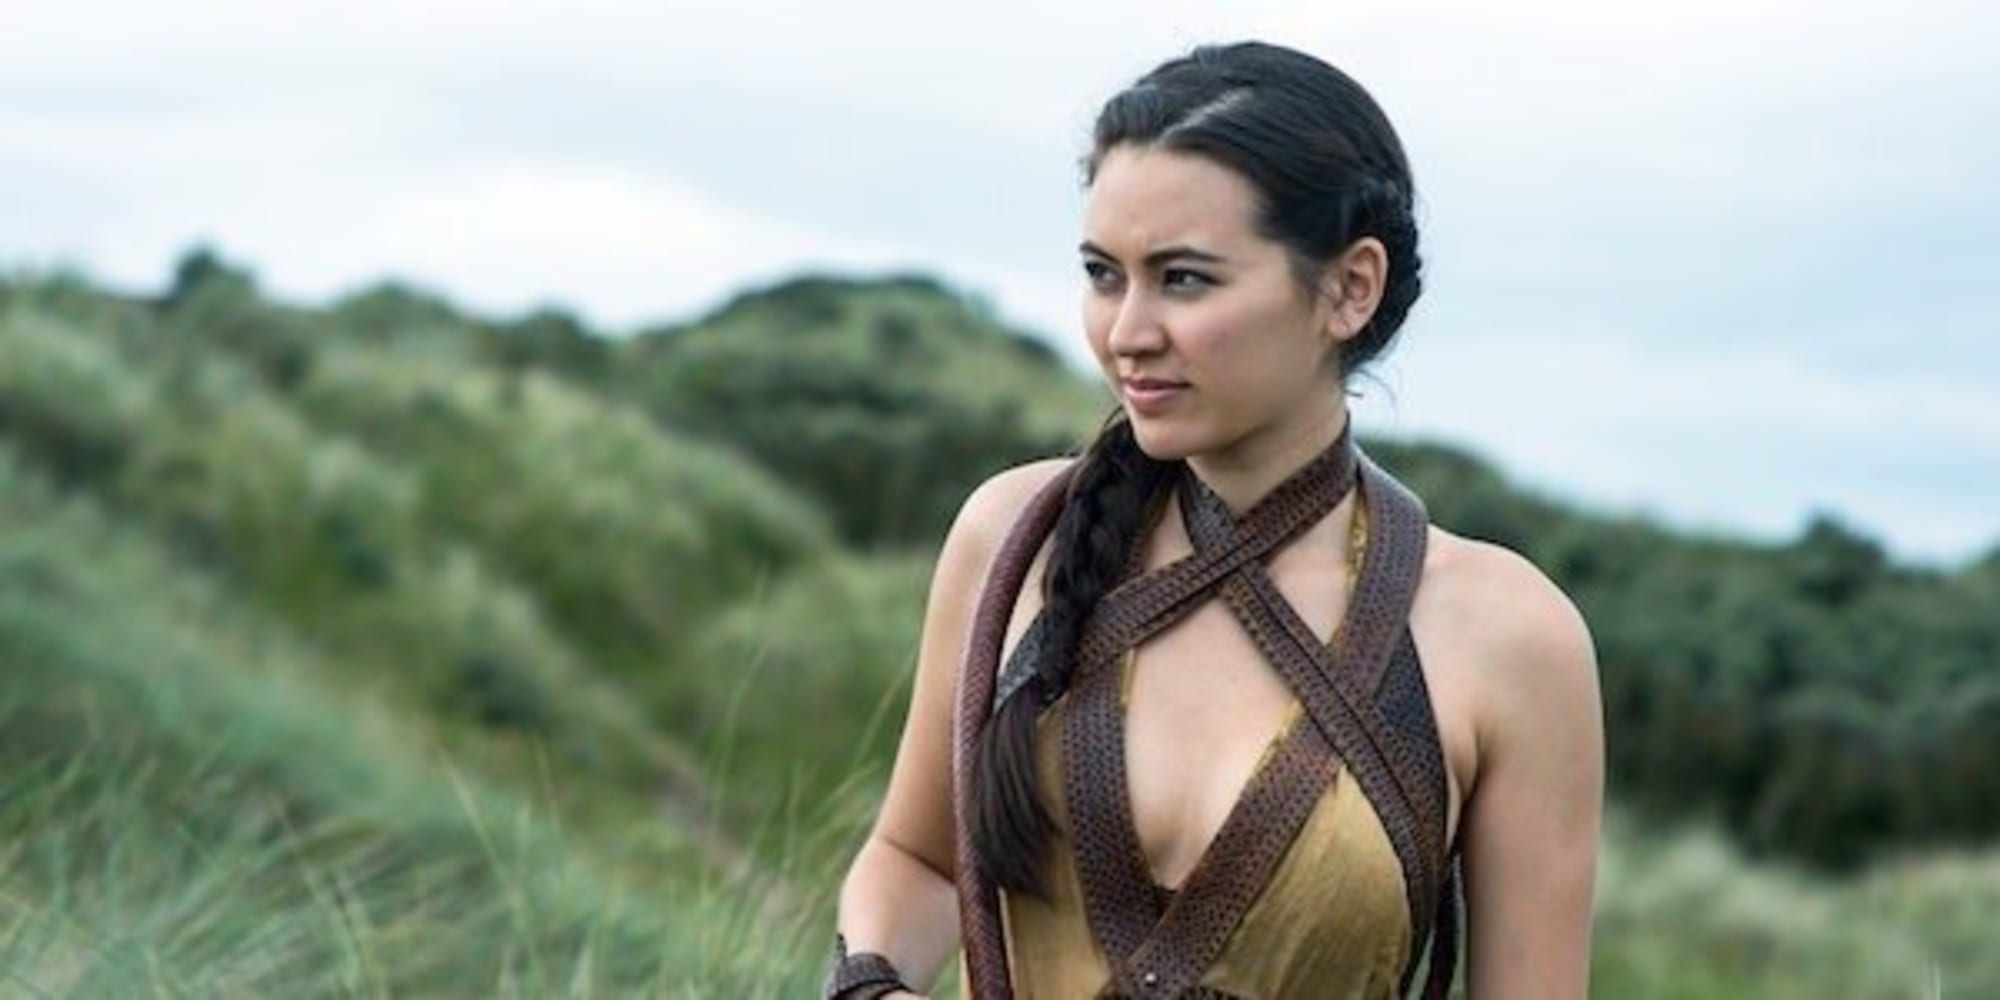 Game of Thrones veteran teases her action-packed role The Matrix 4